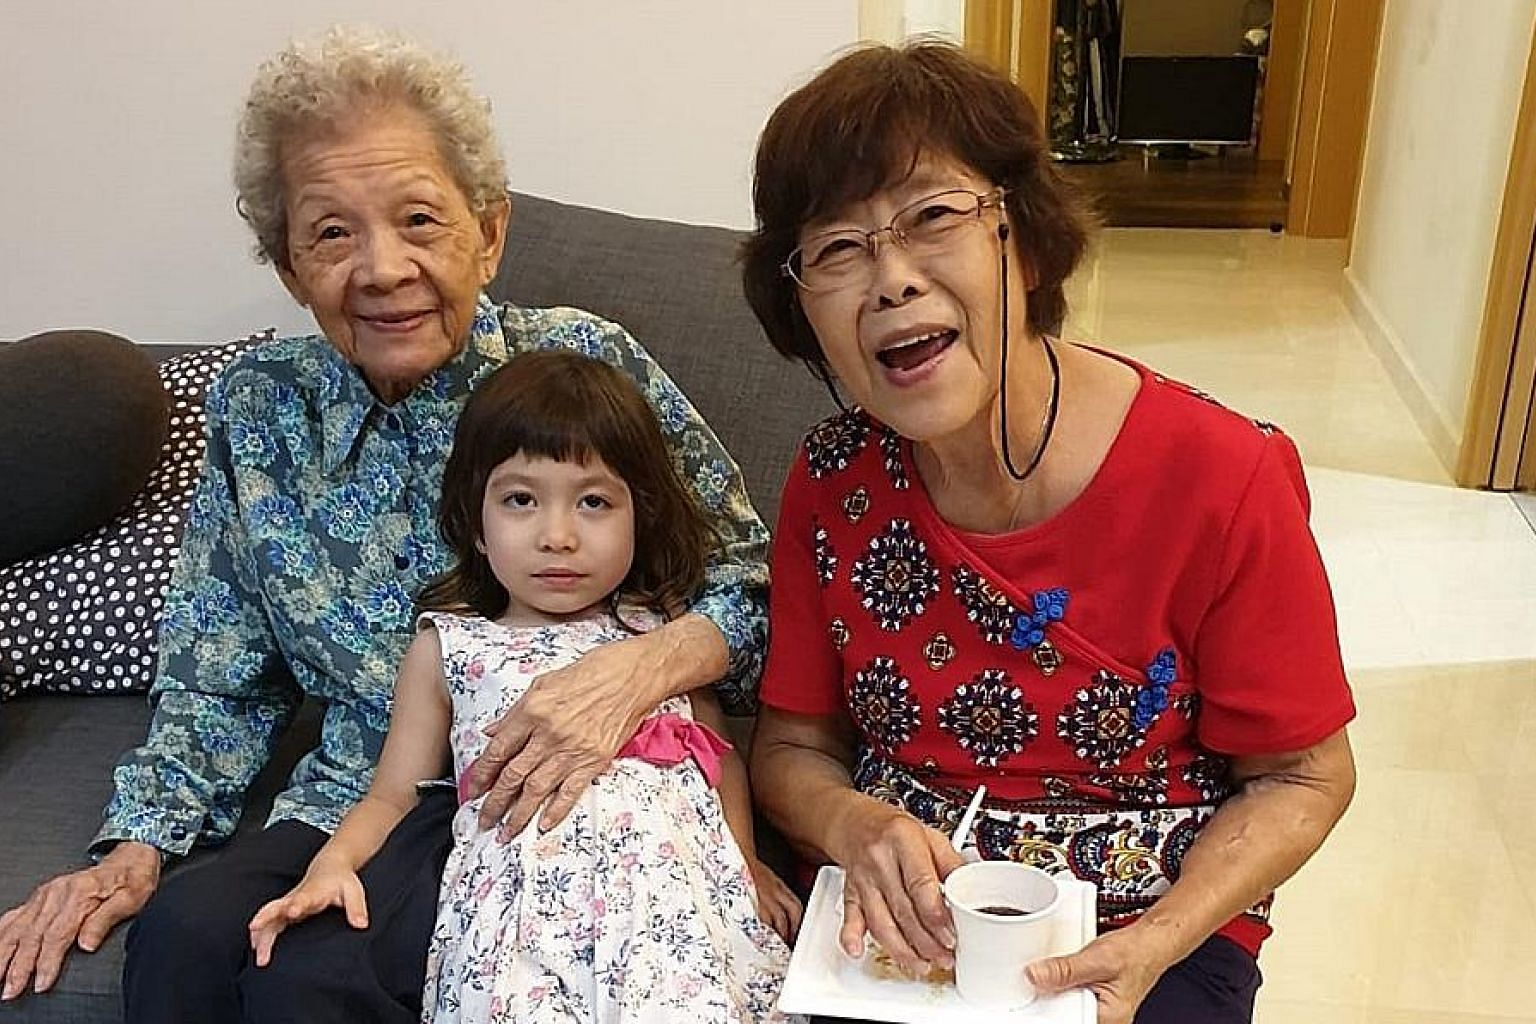 Madam Margaret Yeo with her mother, Madam Ng Guan Cheng, and her granddaughter, Alyx Raja Poh. Madam Yeo, who does not have space at home for a maid, believes the pilot scheme will be a big help, as long as the nursing home is nearby.